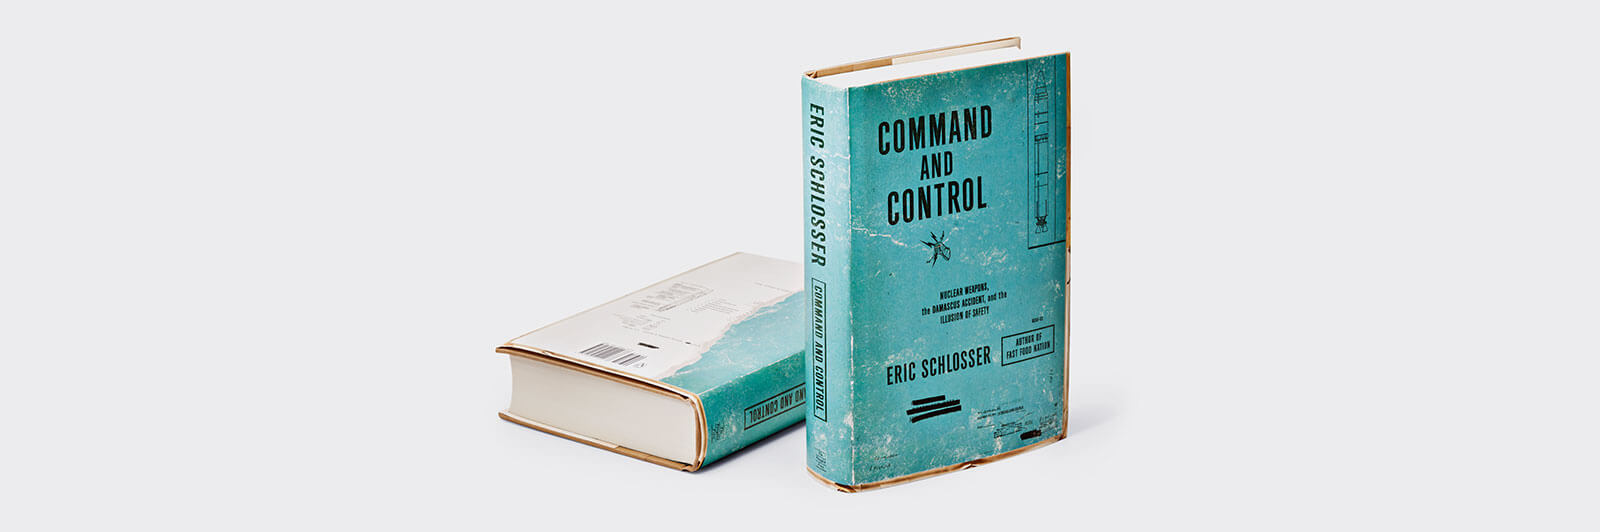 Distressed blue-green Command and Control book cover front and back